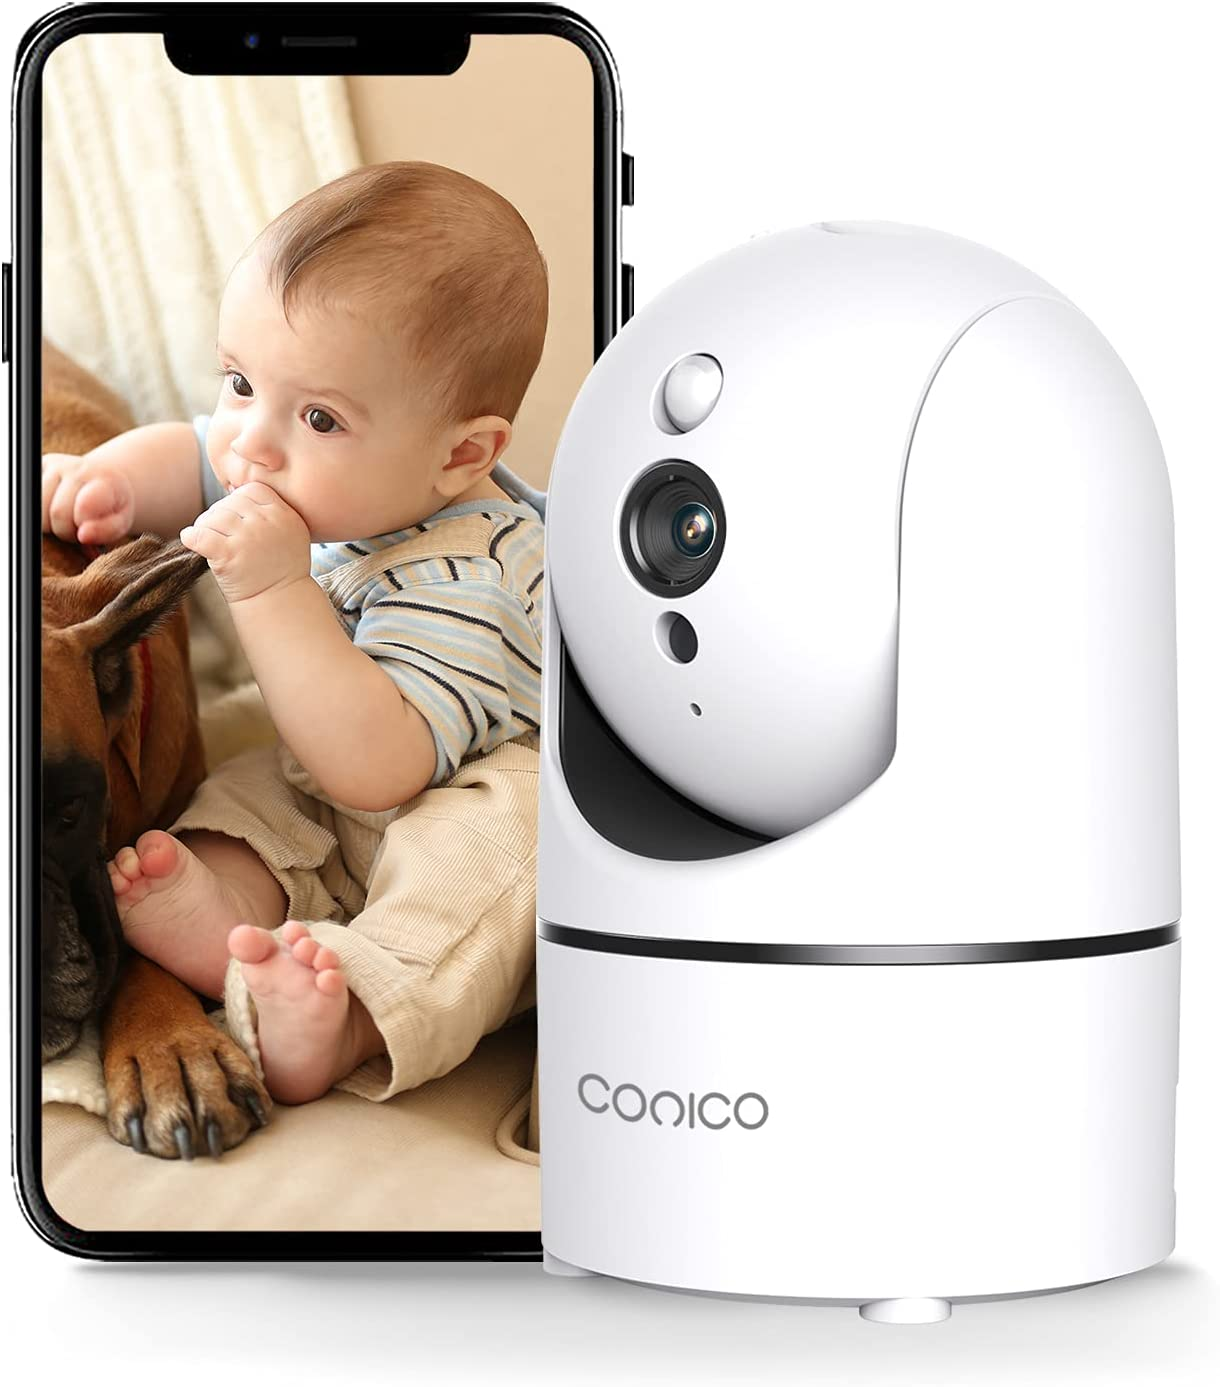 Conico 4MP Baby Monitor, Baby Camera with Sound Detection 2 Way Talk Night Vision Motion Tracking Video Recording 2.4G WiFi IP Cam for Indoor Home Shop Office Security